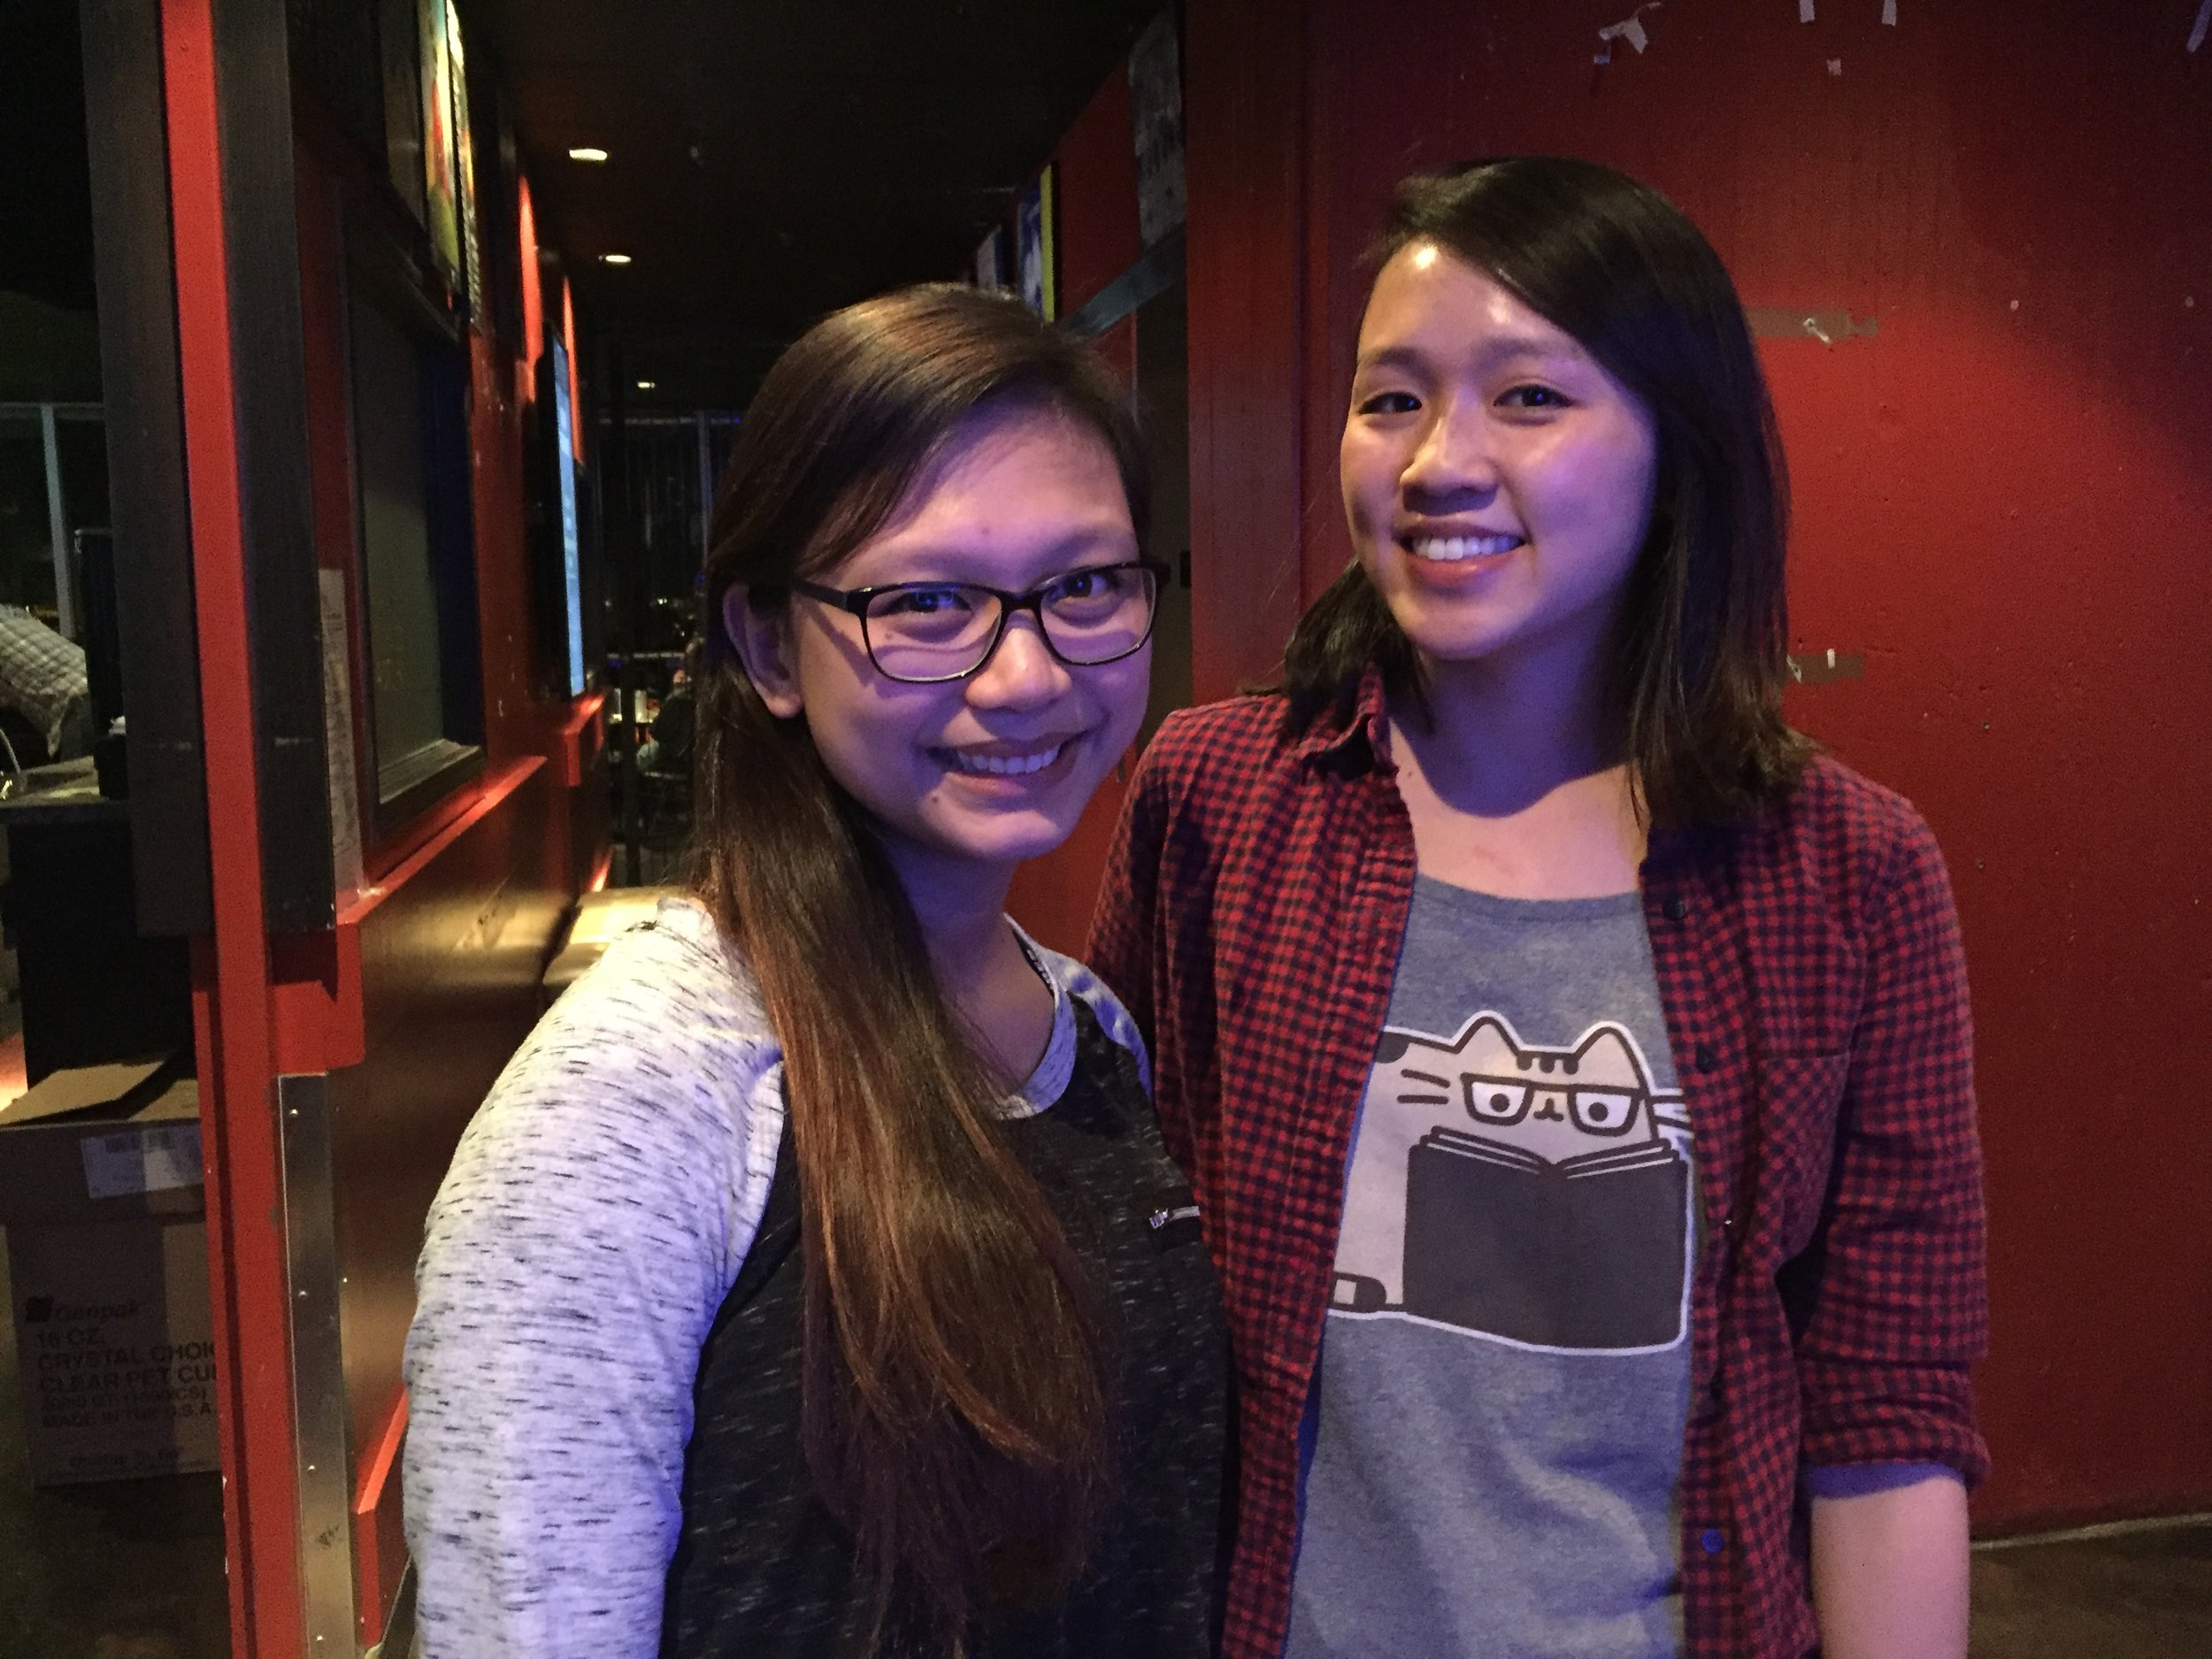 Michelle Mabuyo and Allison Pon at RATT after DemoCamp 35